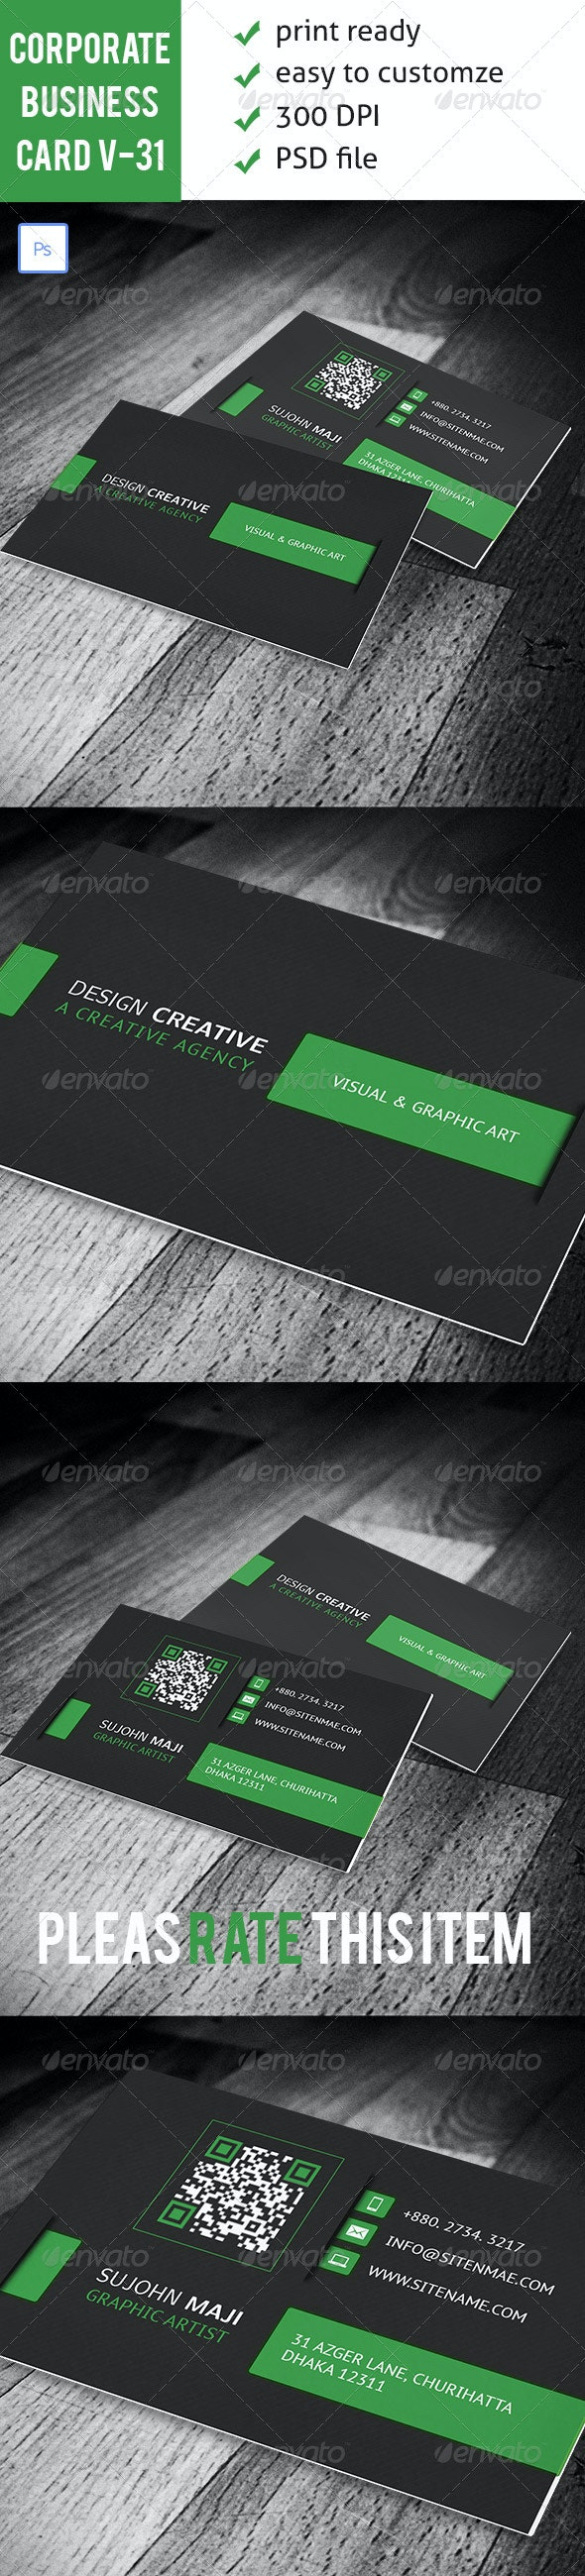 Corporate Business Card VO-31 - Corporate Business Cards